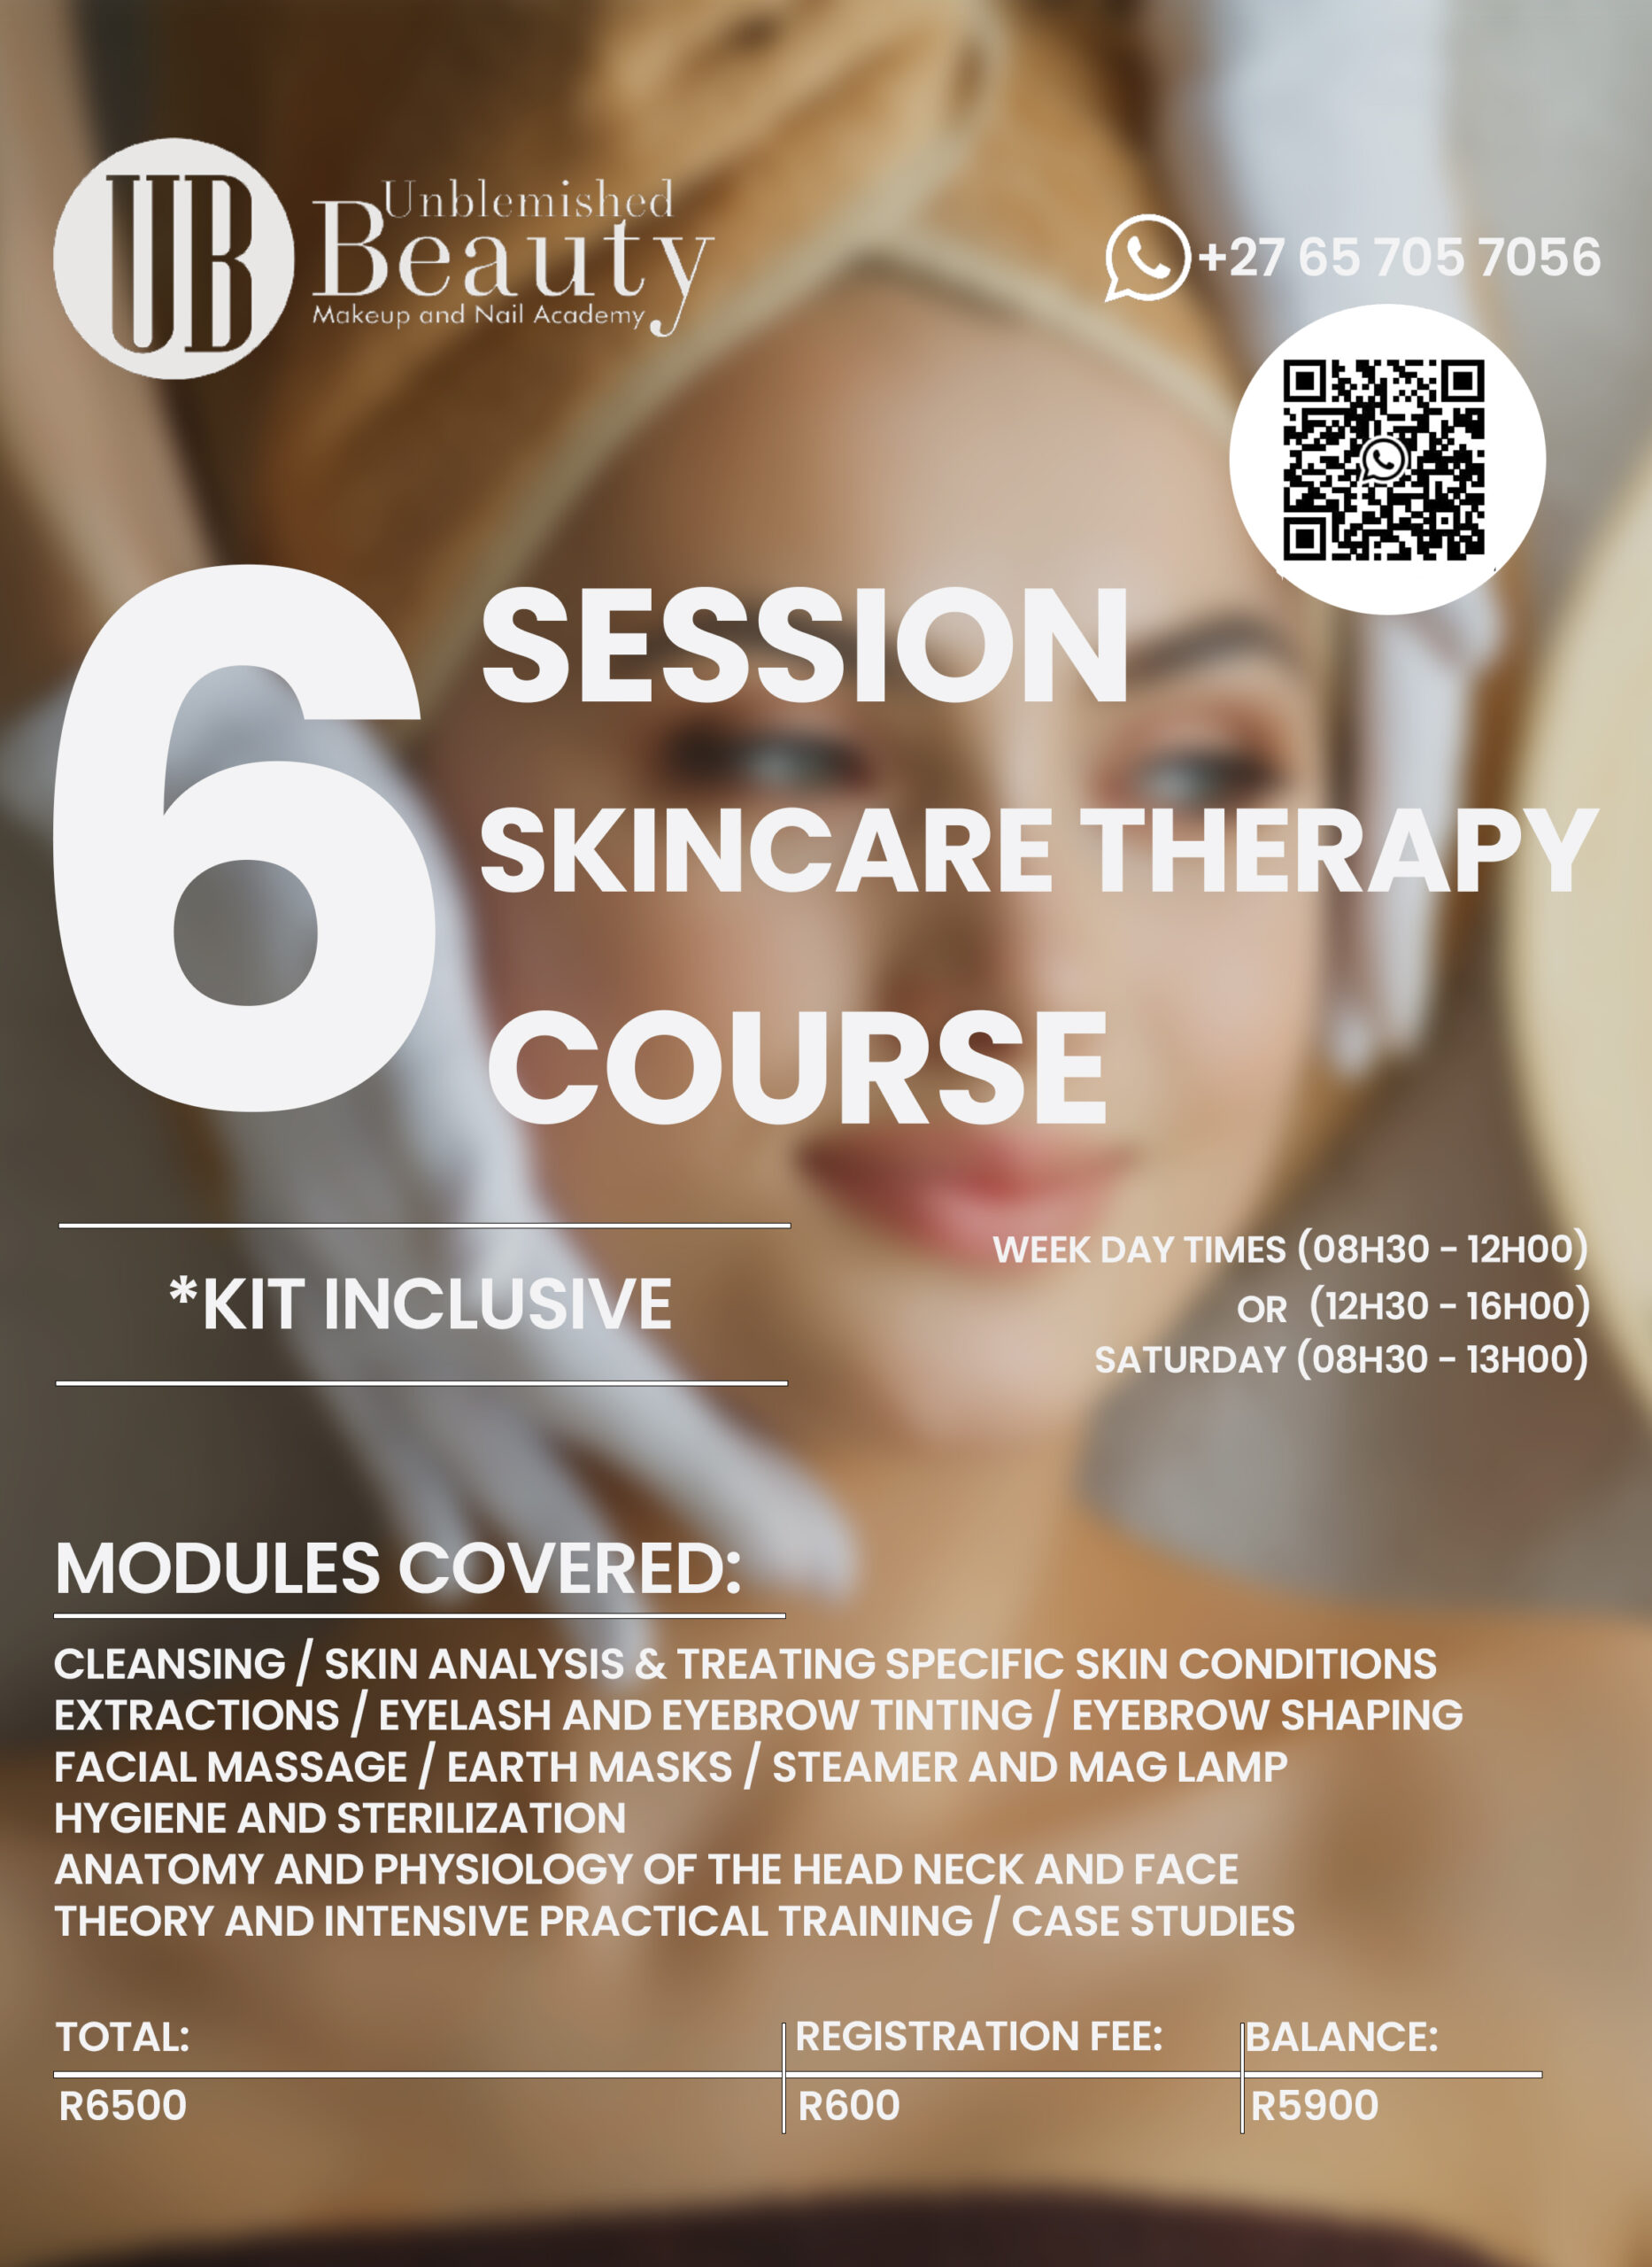 Unblemished Beauty Course Posters- Skincare Therapy 2